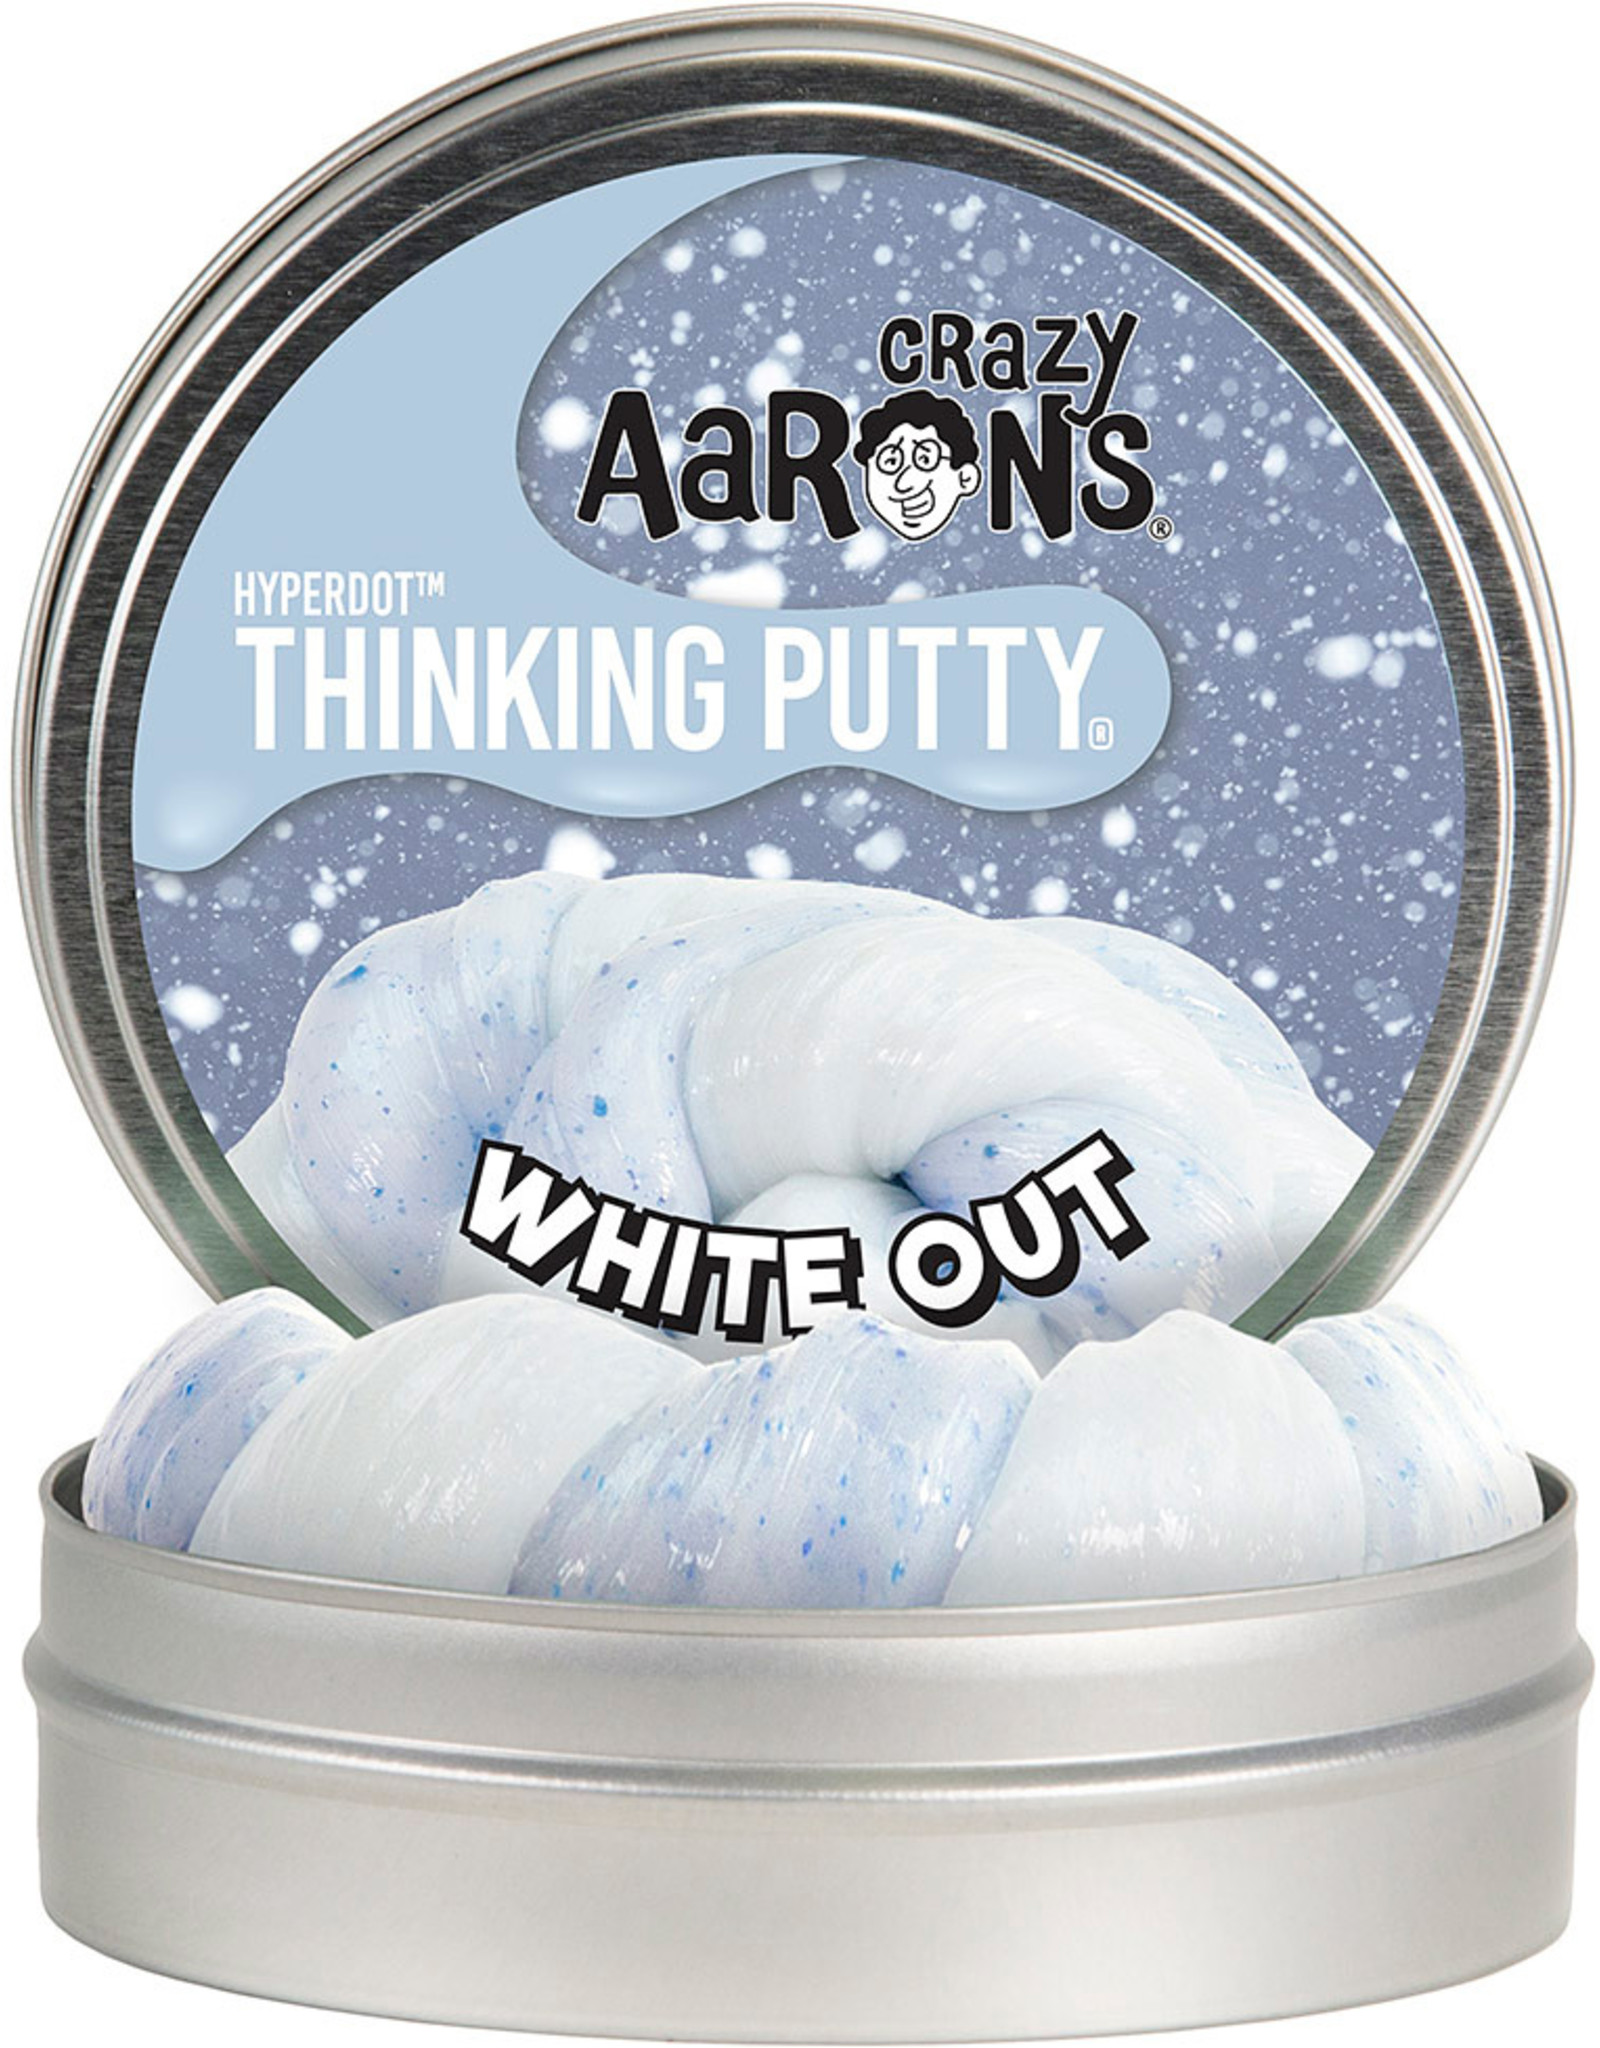 Crazy Aarons 3.2 oz - White Out Thinking Putty